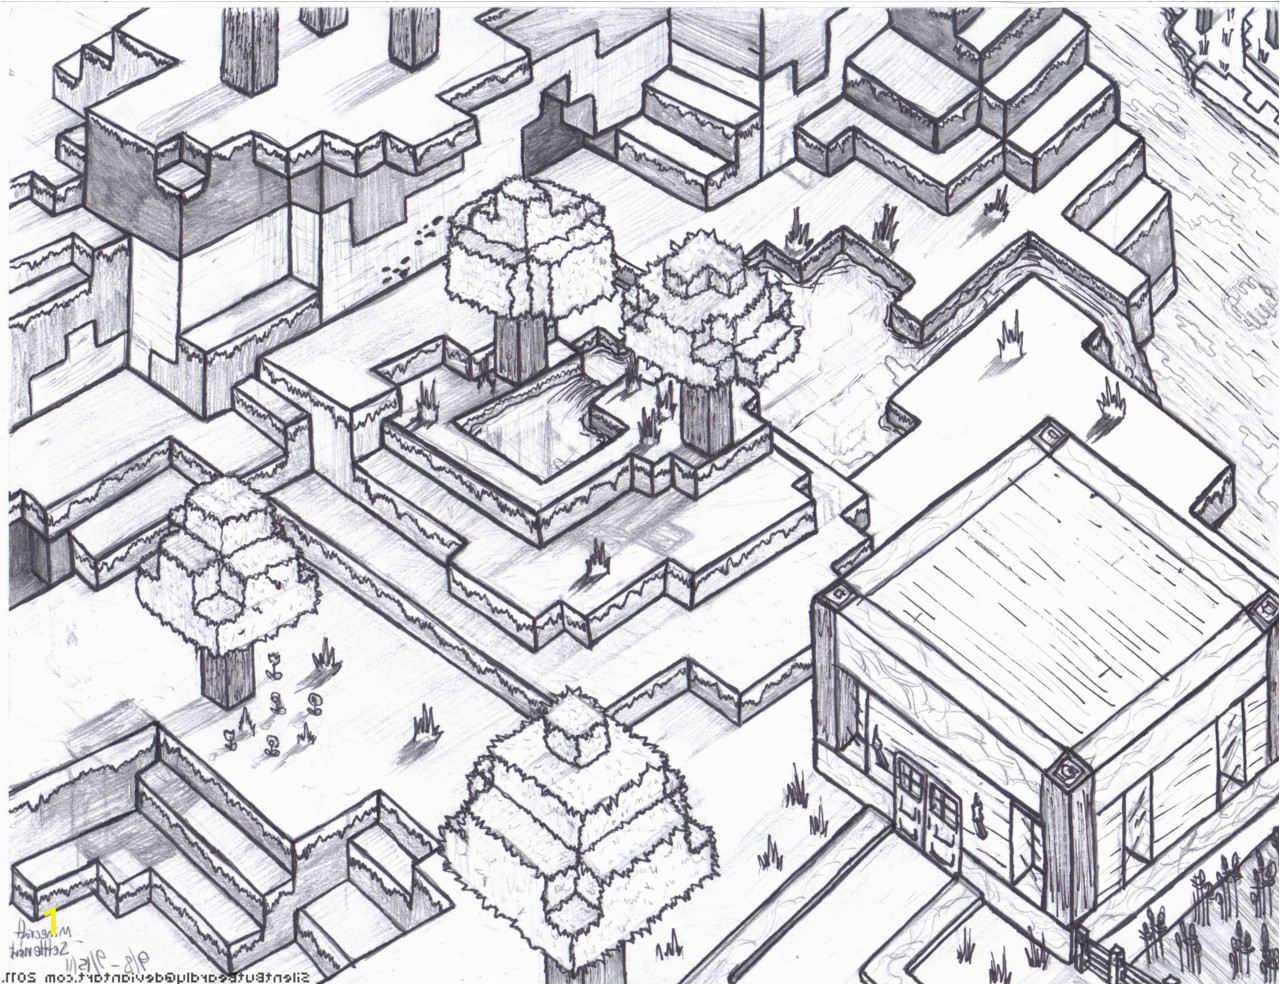 d1cfbff80d07ea0ea1bd64d9f70 28 collection of minecraft house coloring pages high quality 1280 985